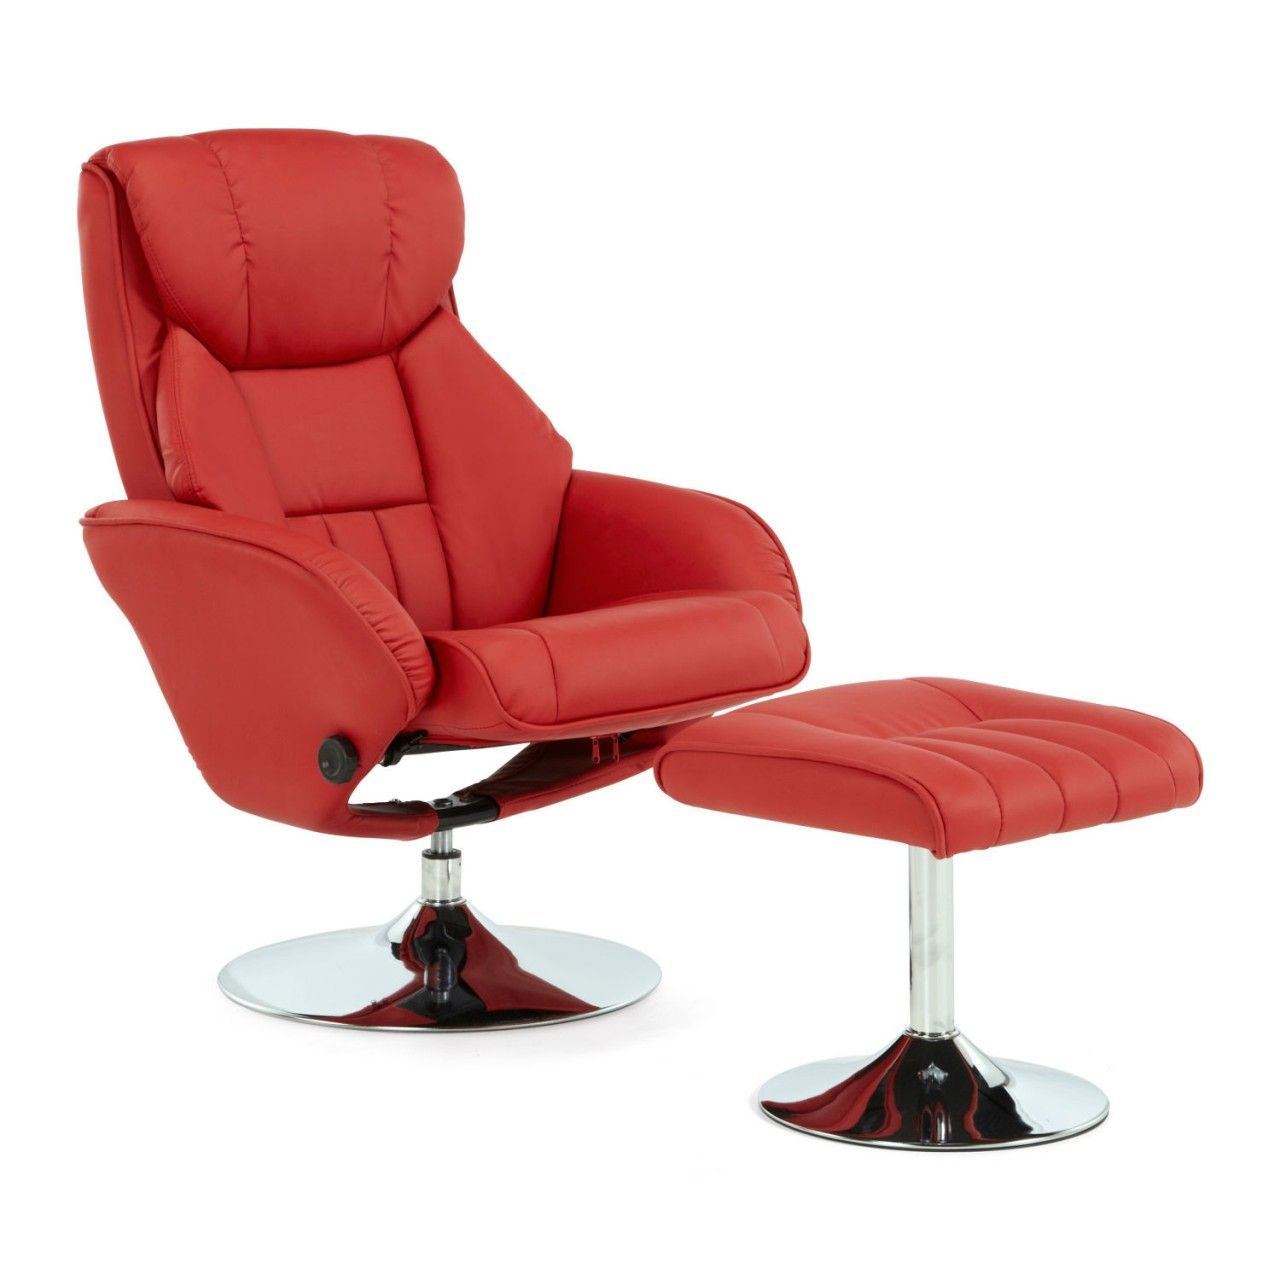 Red Leather Swivel Chair Serene Larvik Red Leather Swivel Recliner Chair With Footstool